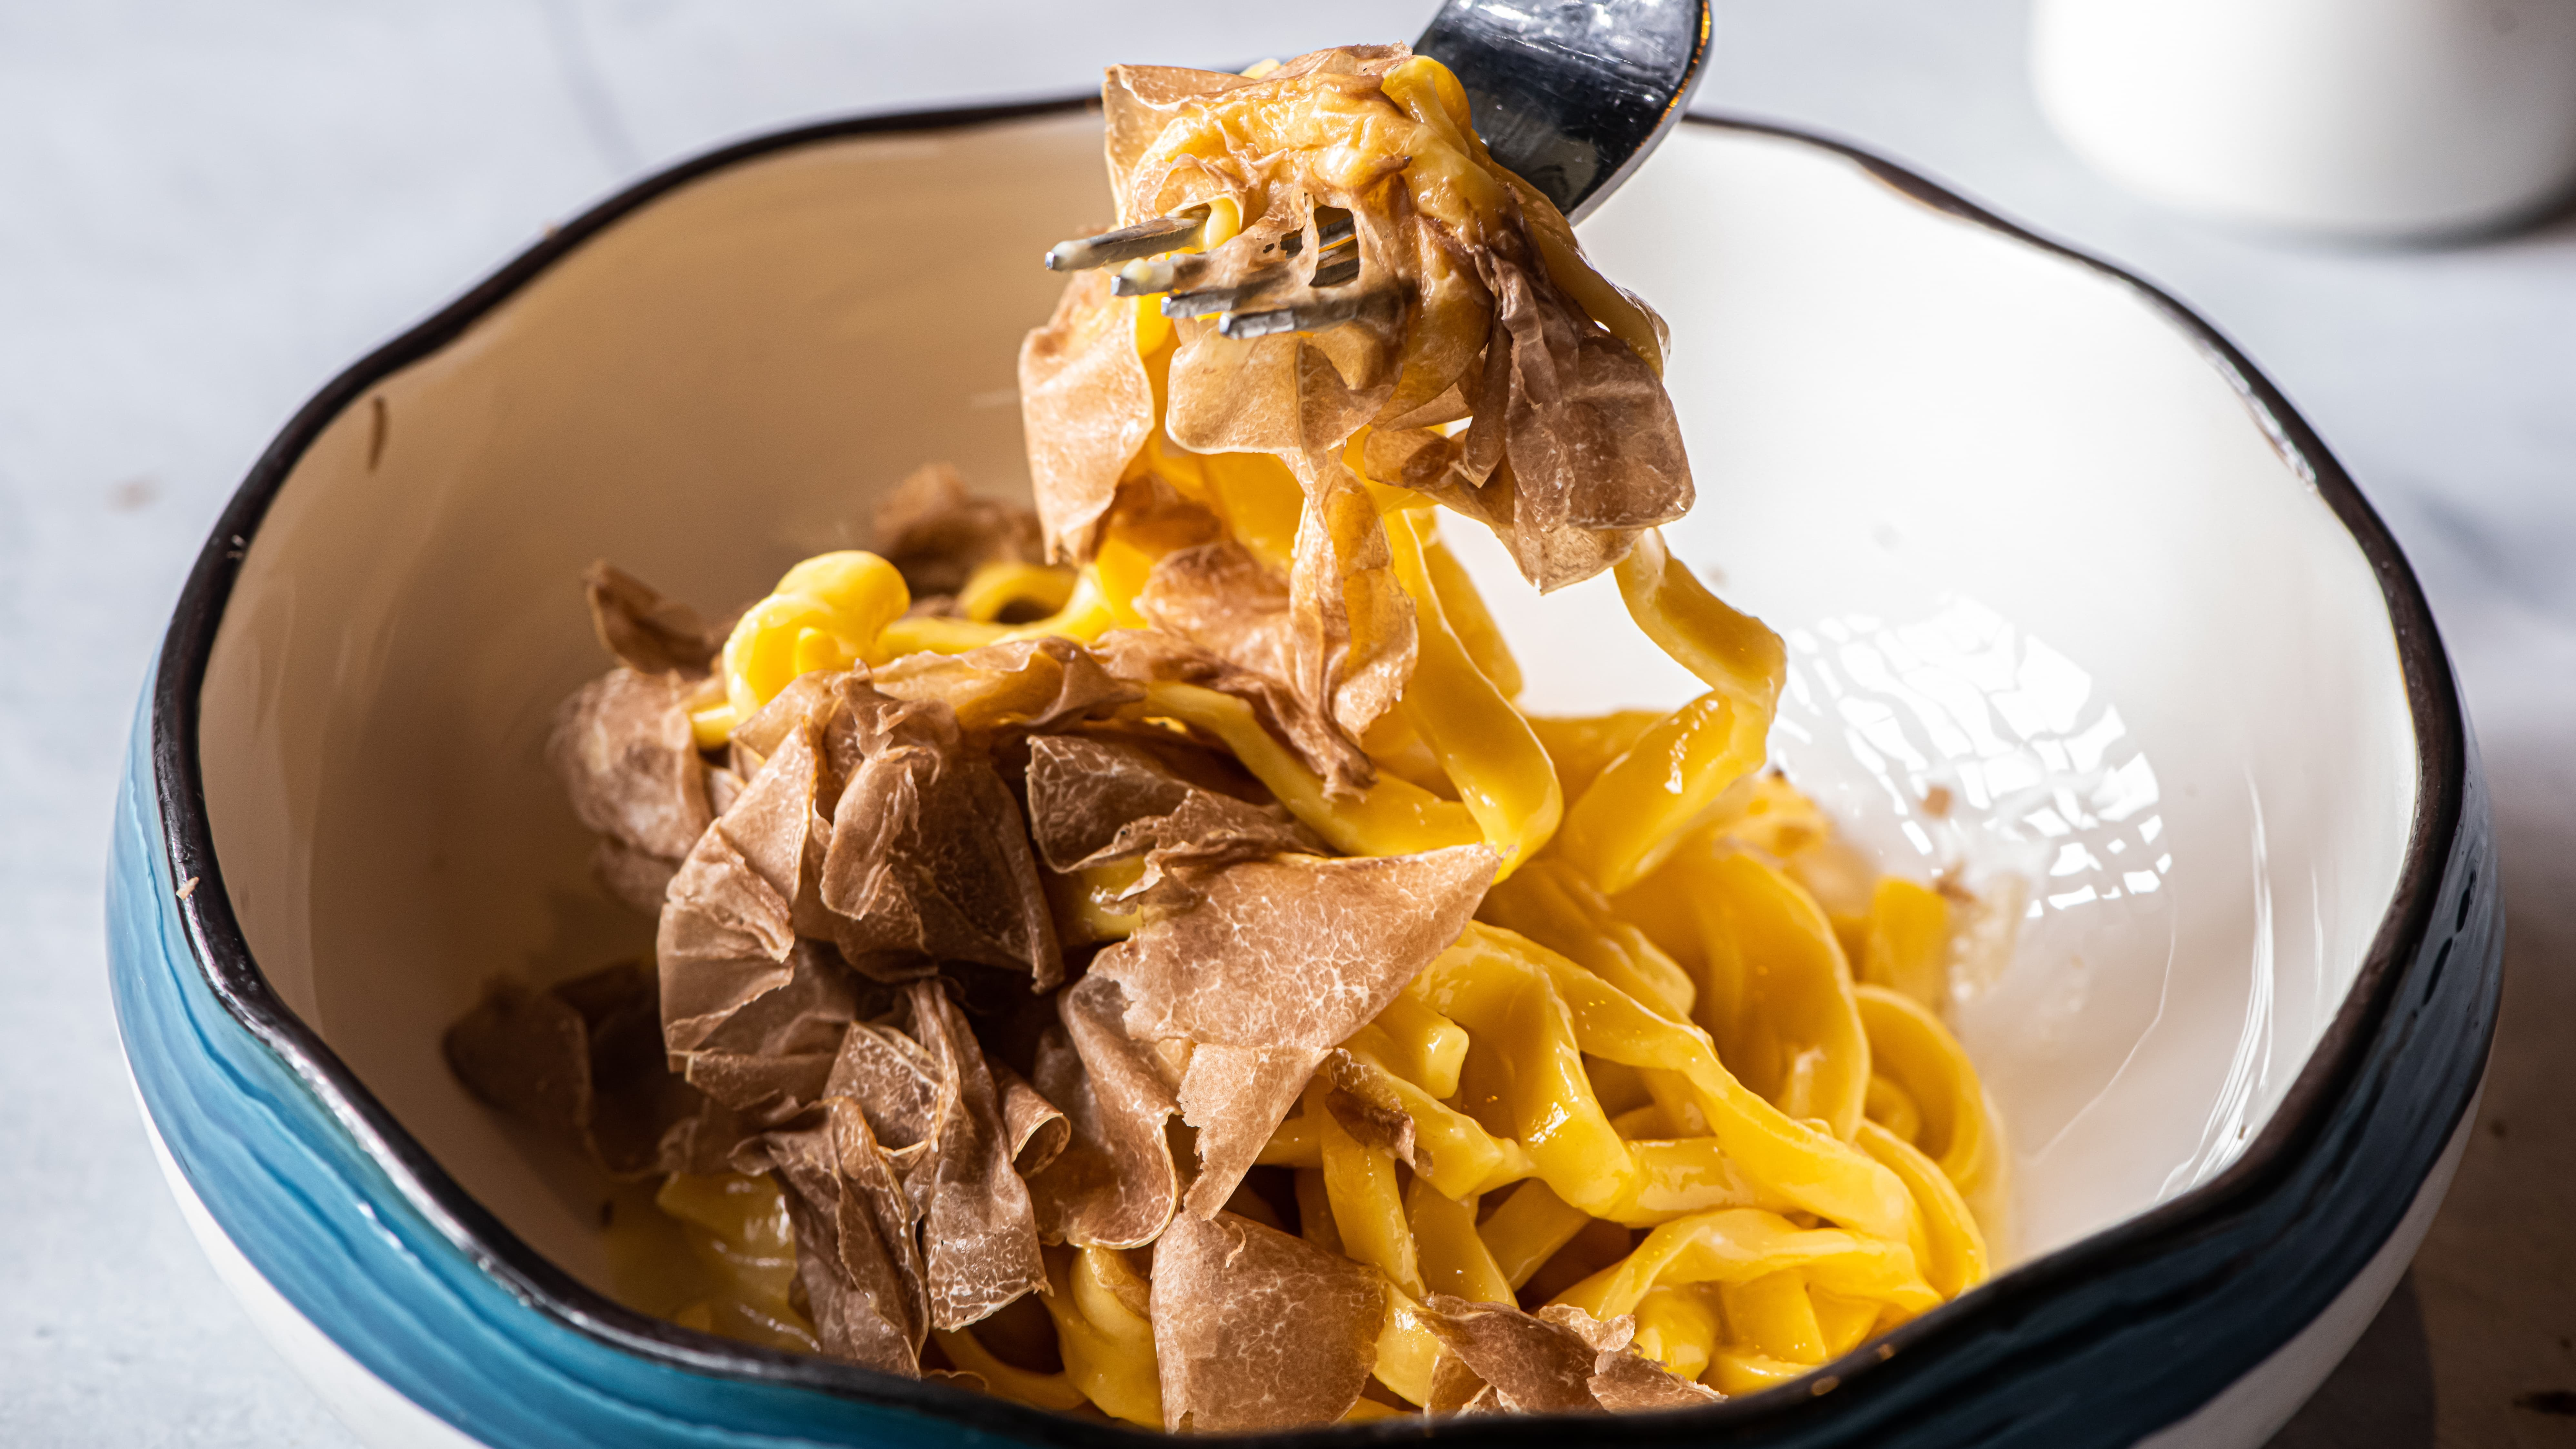 10 white truffle dishes to try in Hong Kong for a decadent autumn